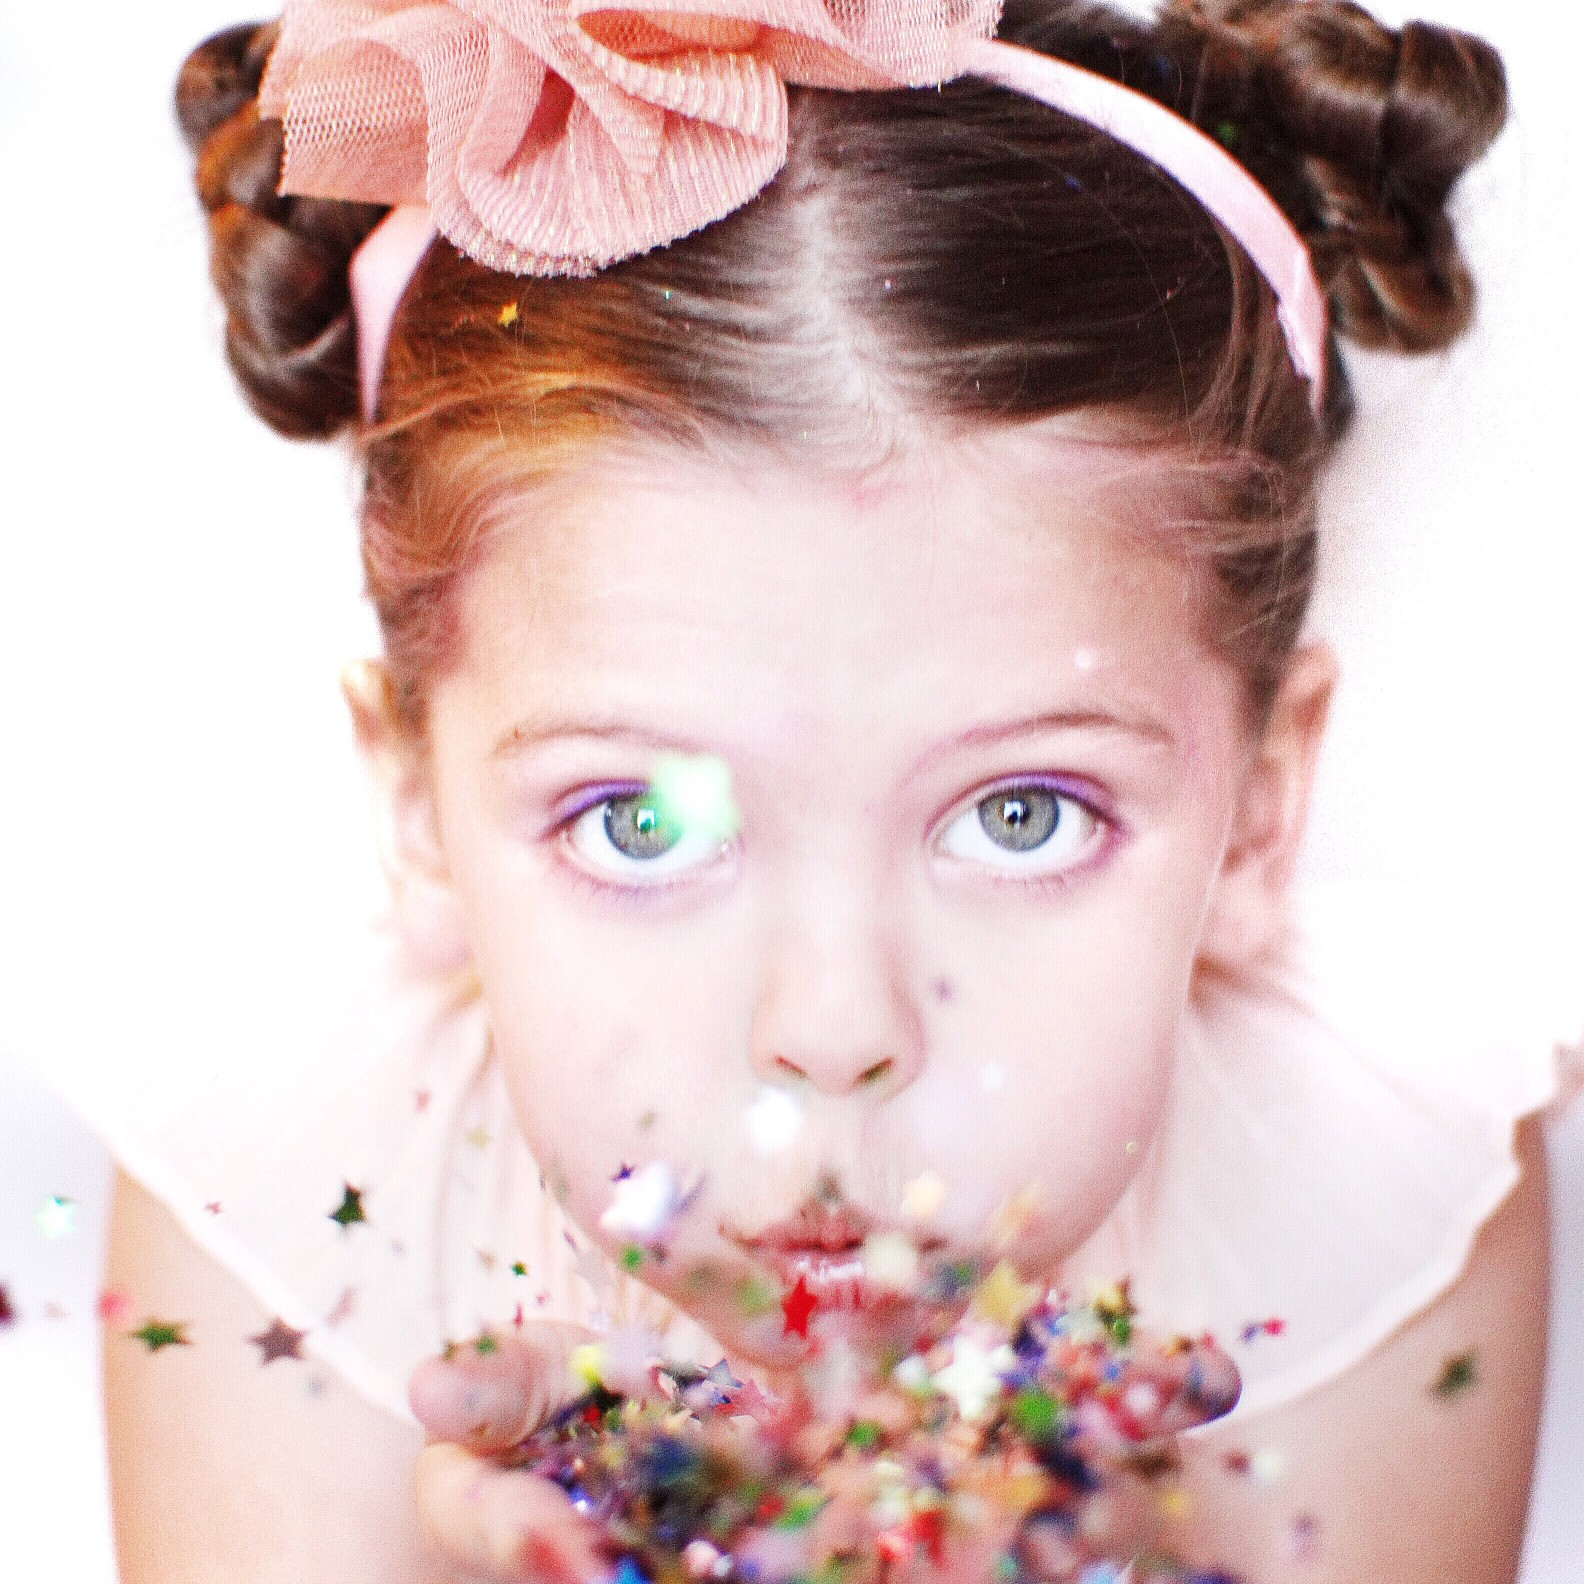 Top kids birthday ideas and trends for 2019 and 2020